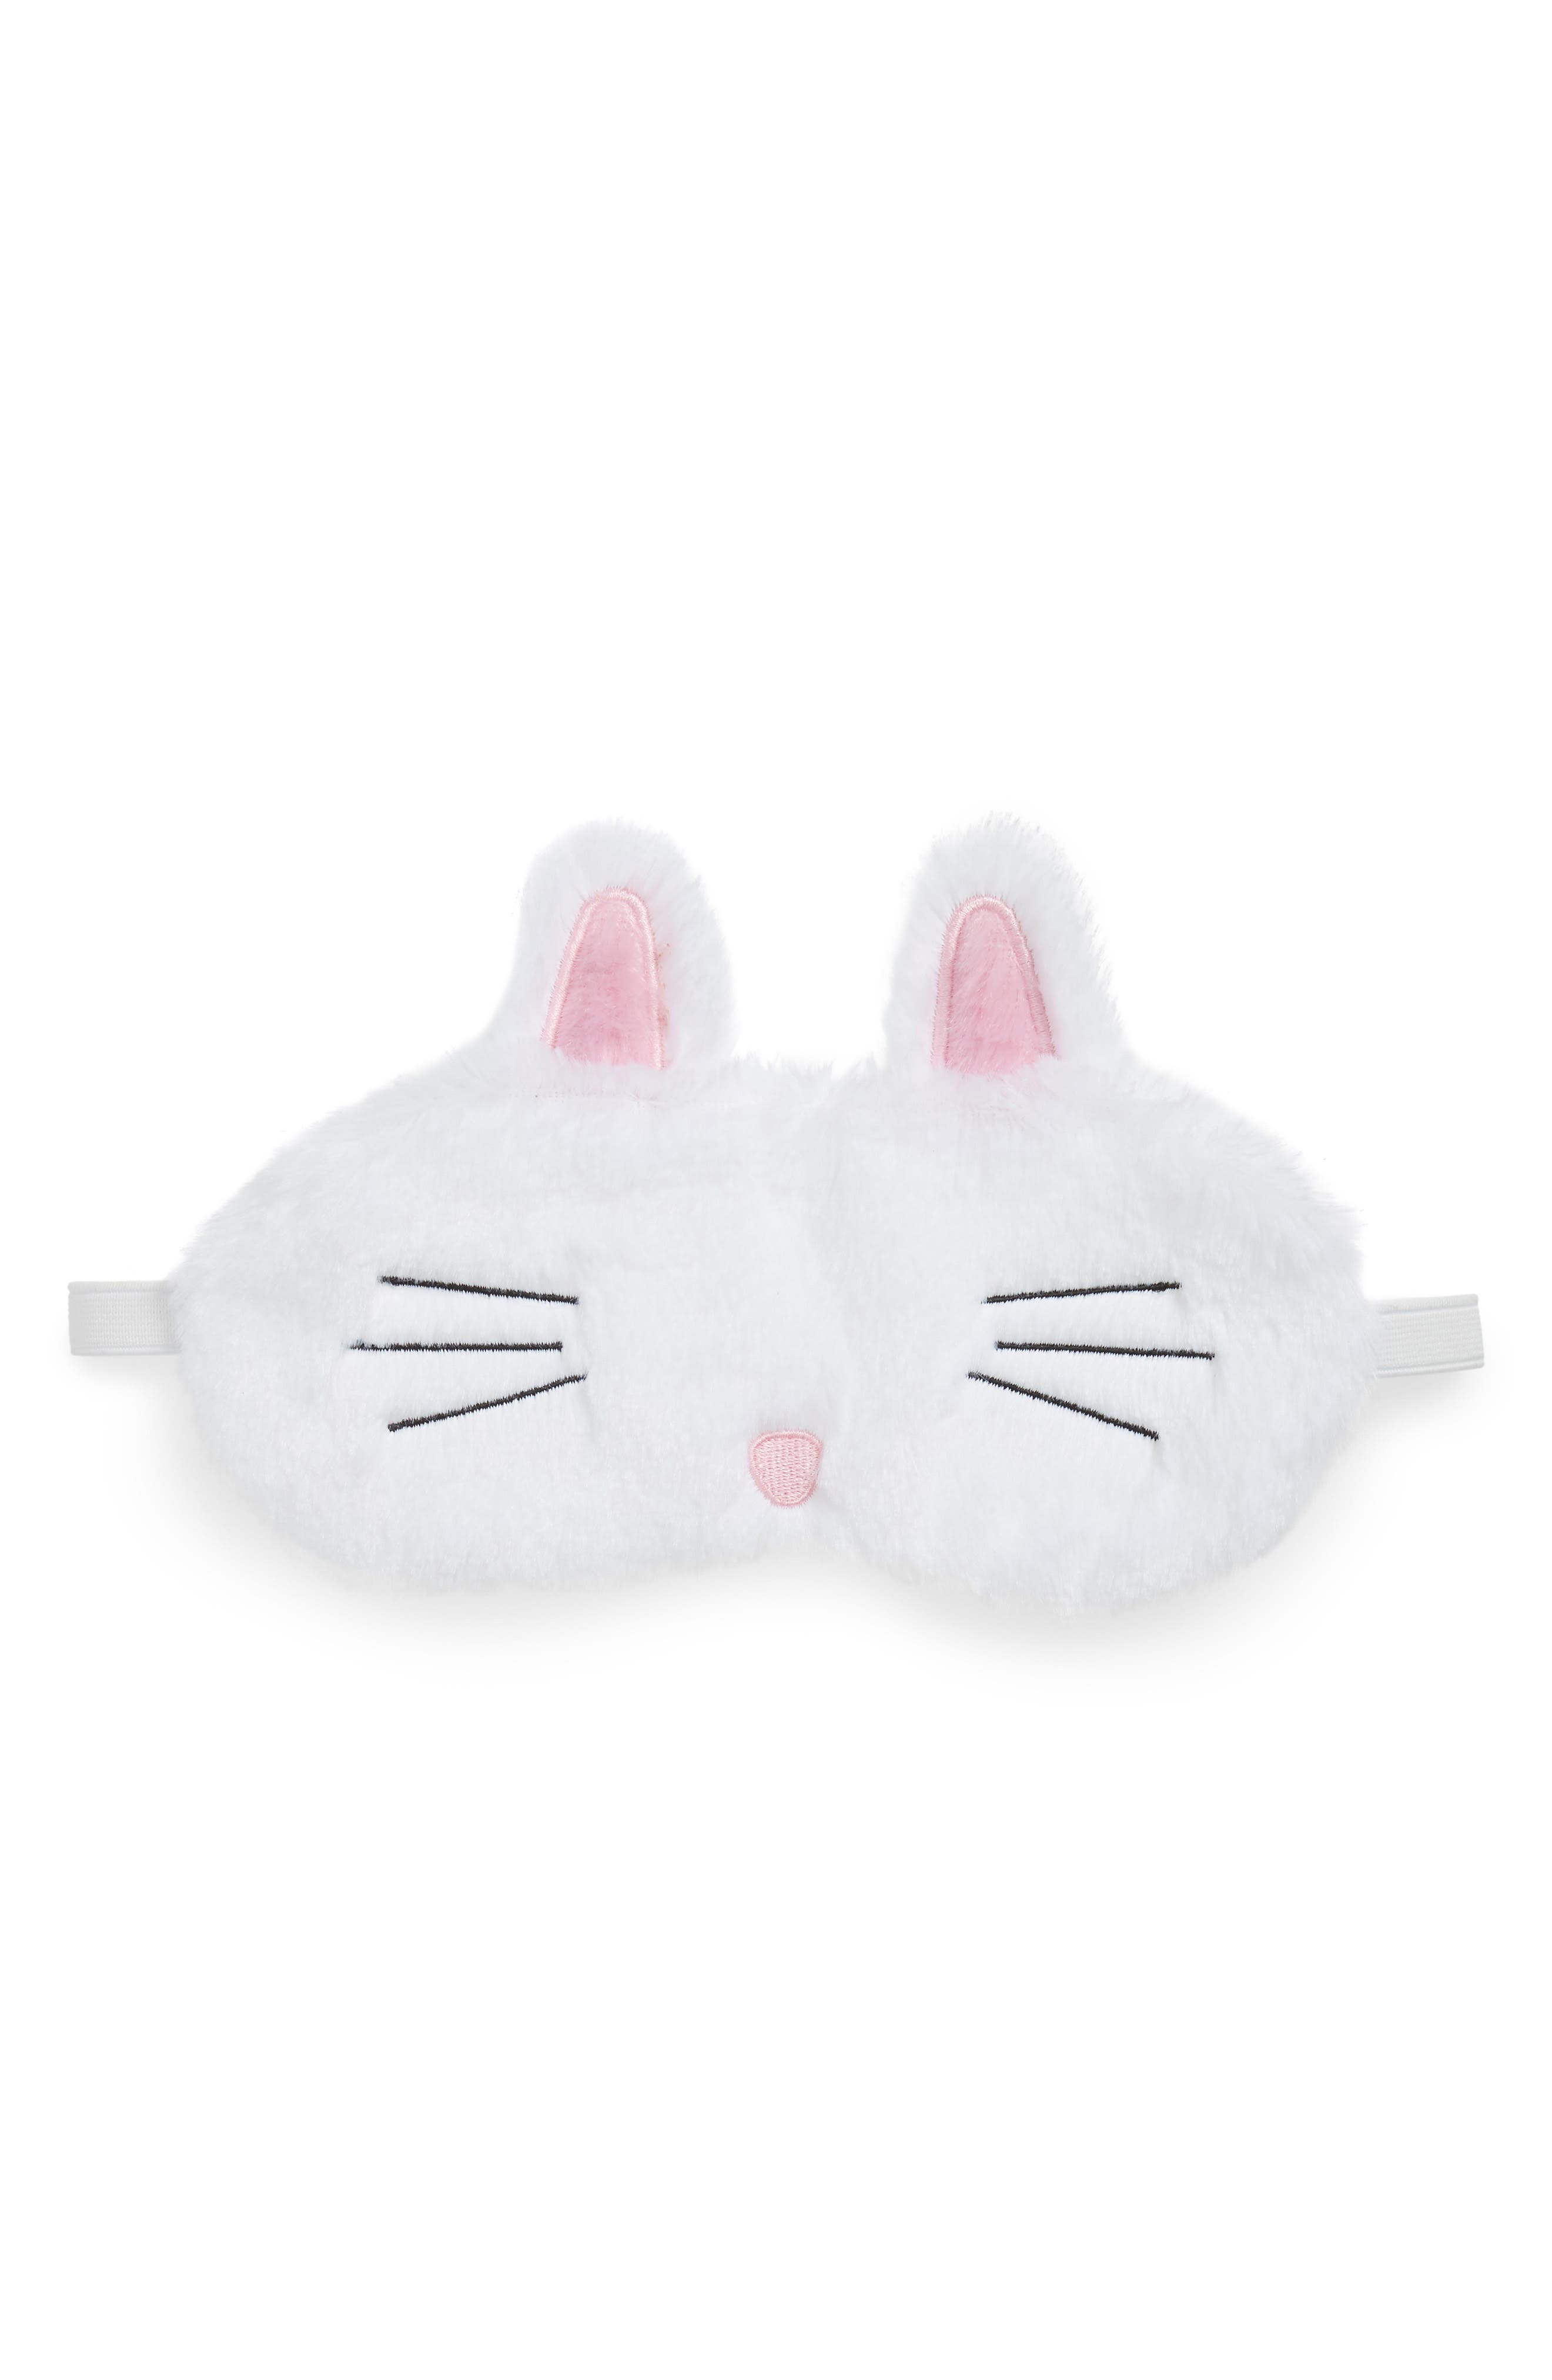 Bunny Spa Eye Mask,                             Main thumbnail 1, color,                             100